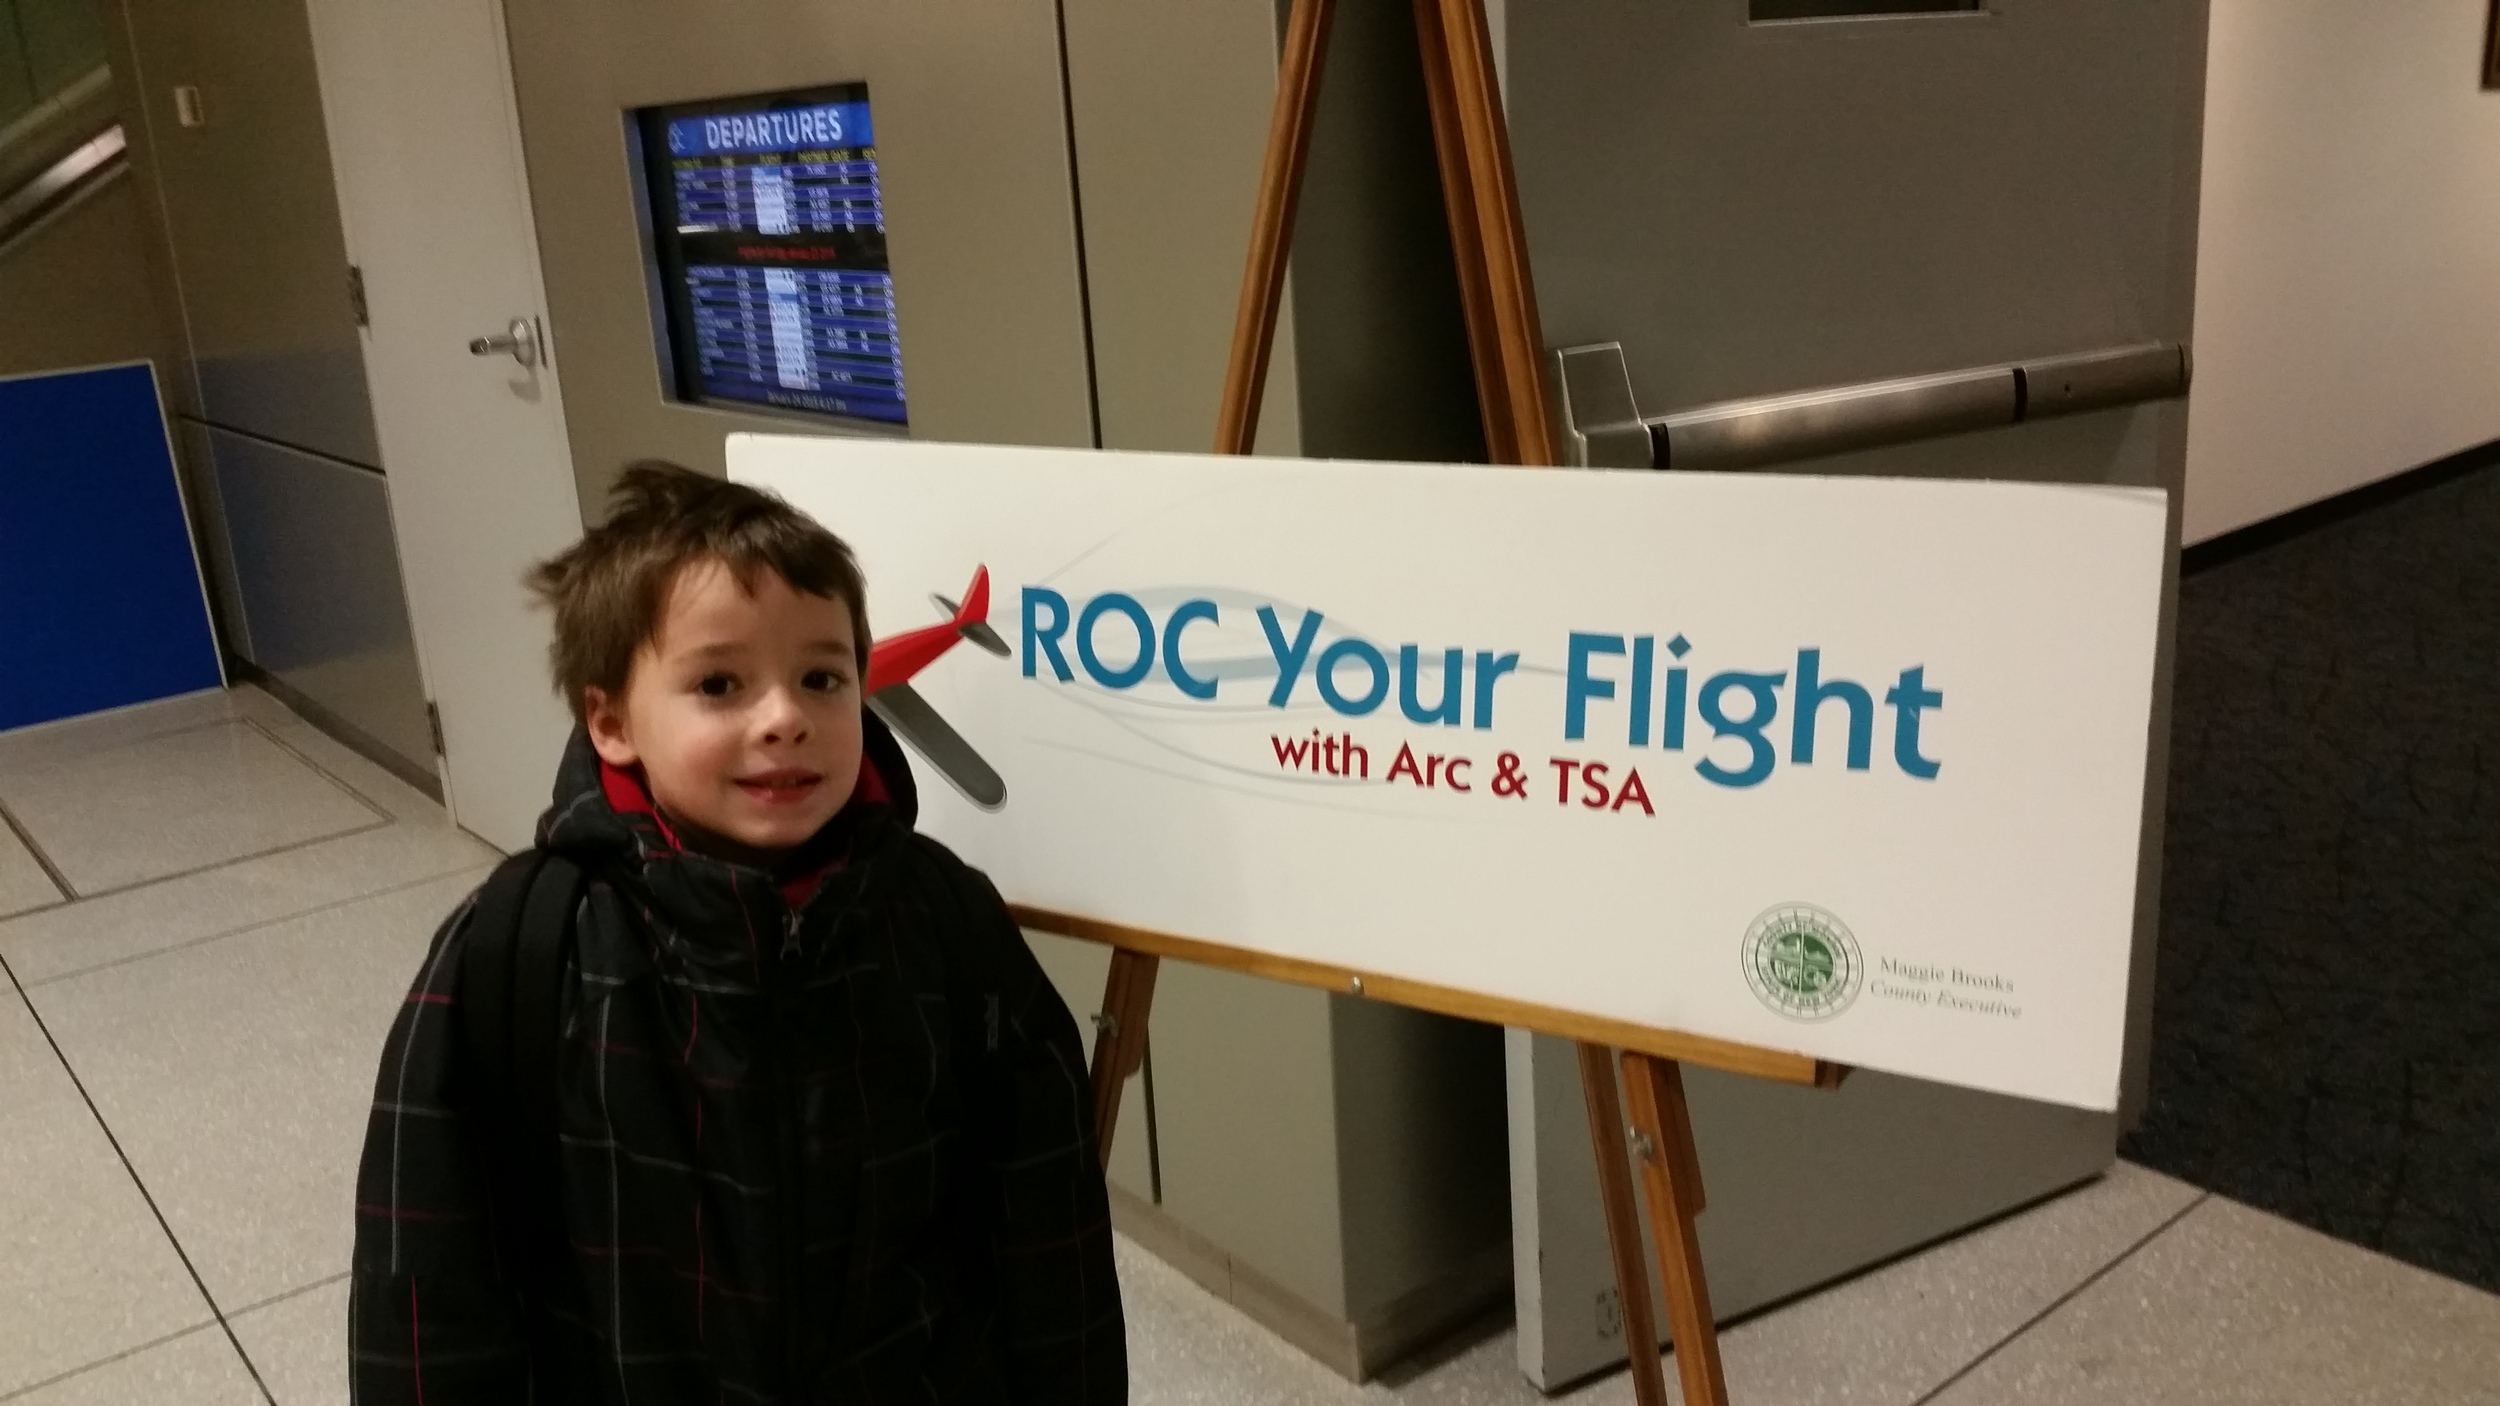 My son Emerson was my guinea pig at the ROC Your Flight event.